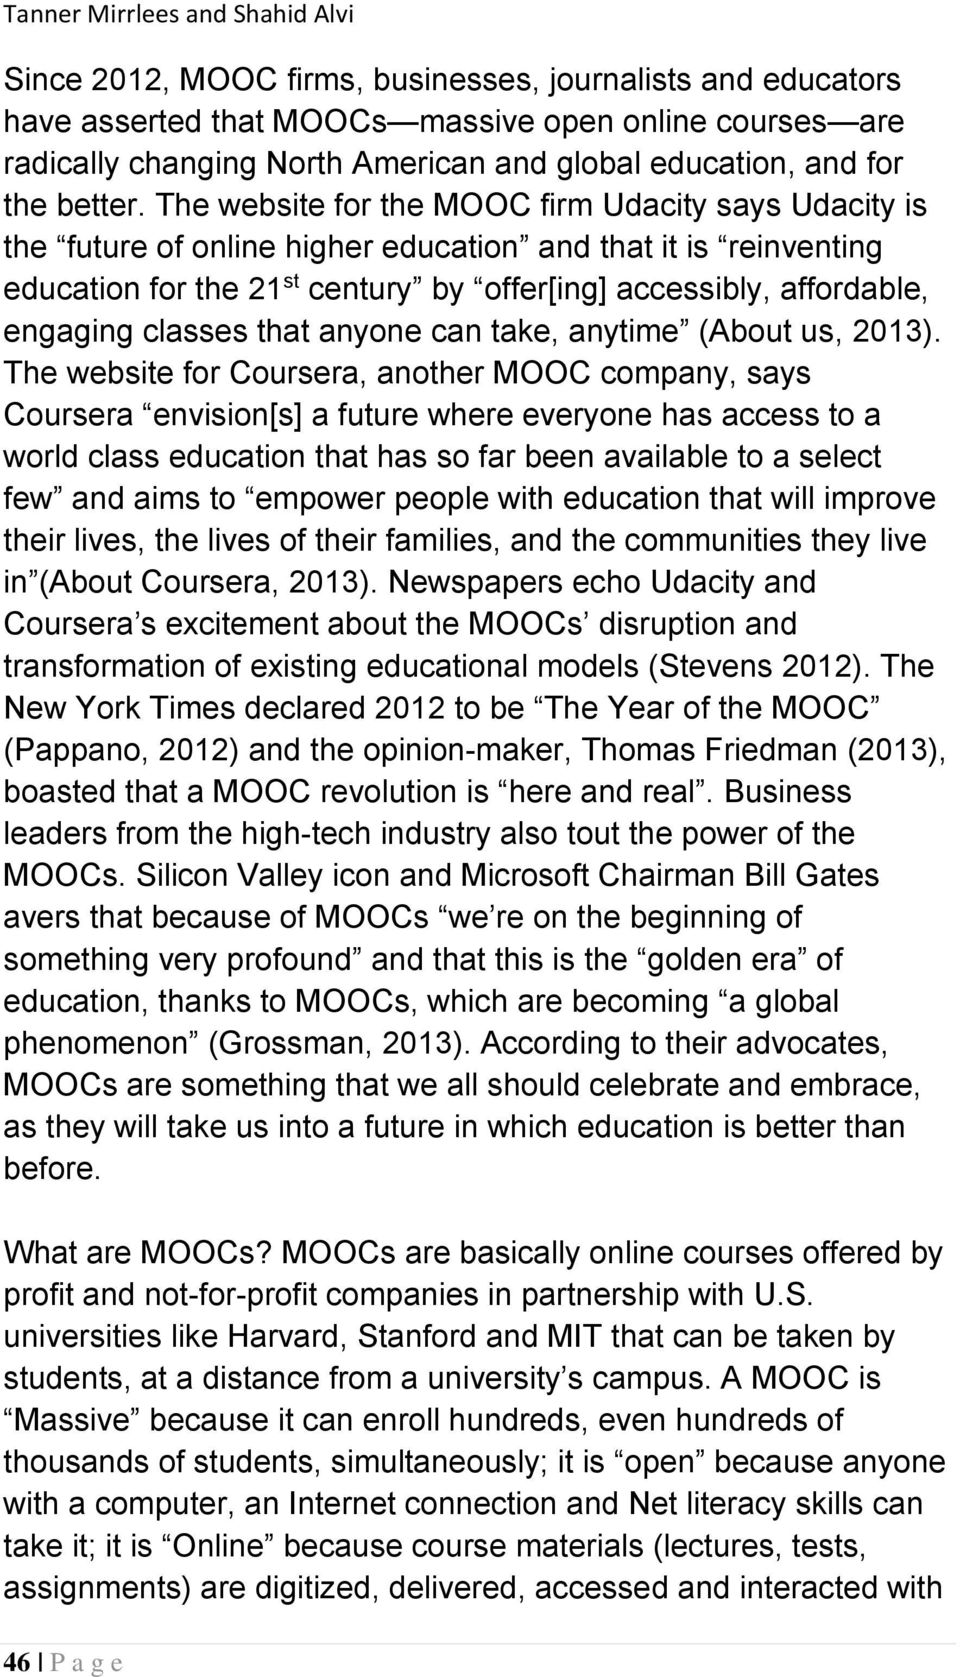 The website for the MOOC firm Udacity says Udacity is the future of online higher education and that it is reinventing education for the 21 st century by offer[ing] accessibly, affordable, engaging